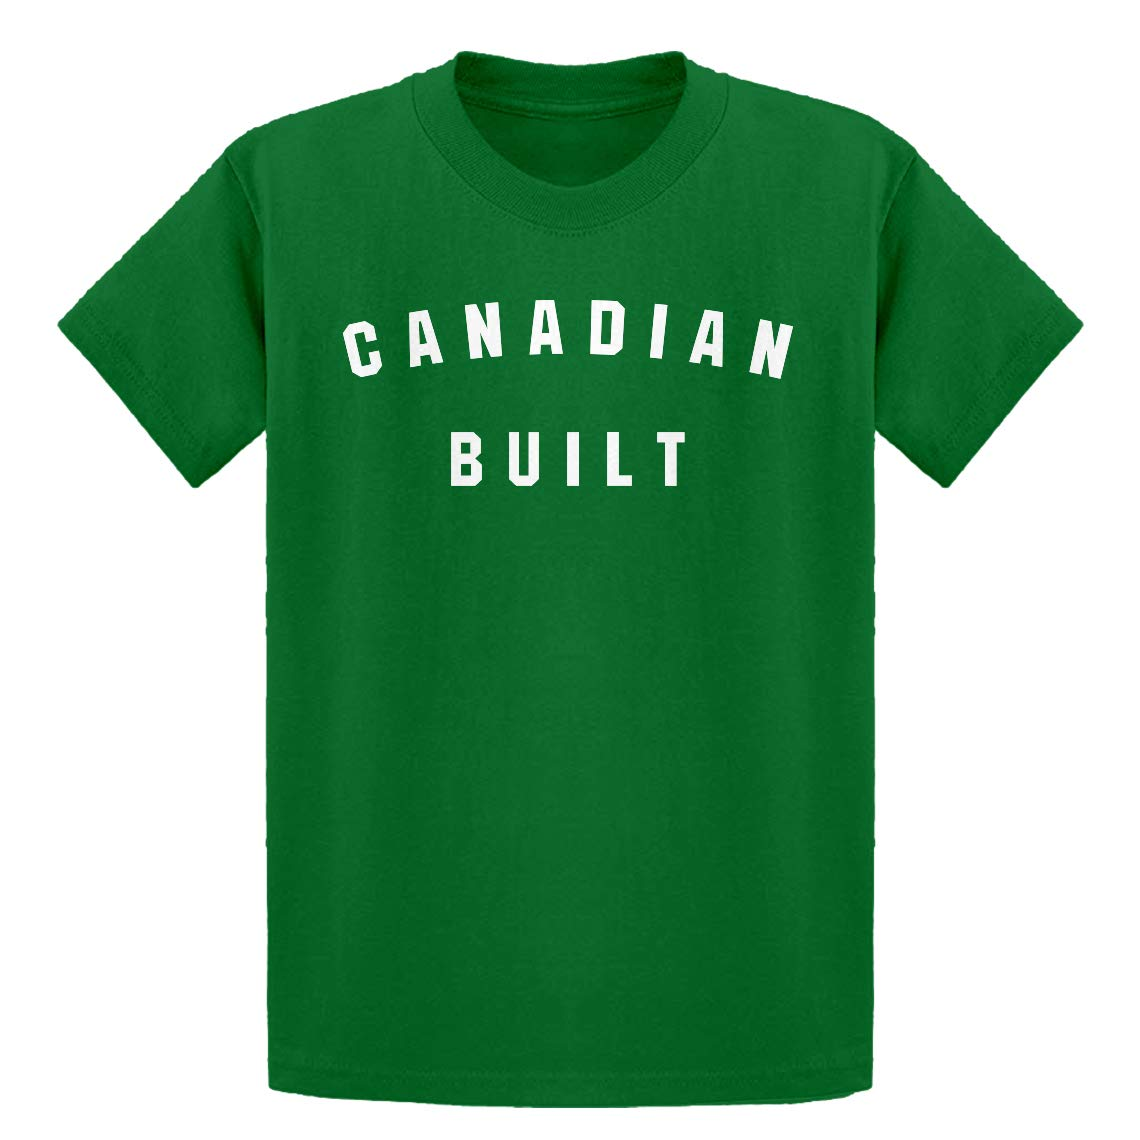 Indica Plateau Youth Canadian Built Kids T-Shirt 3780-Y